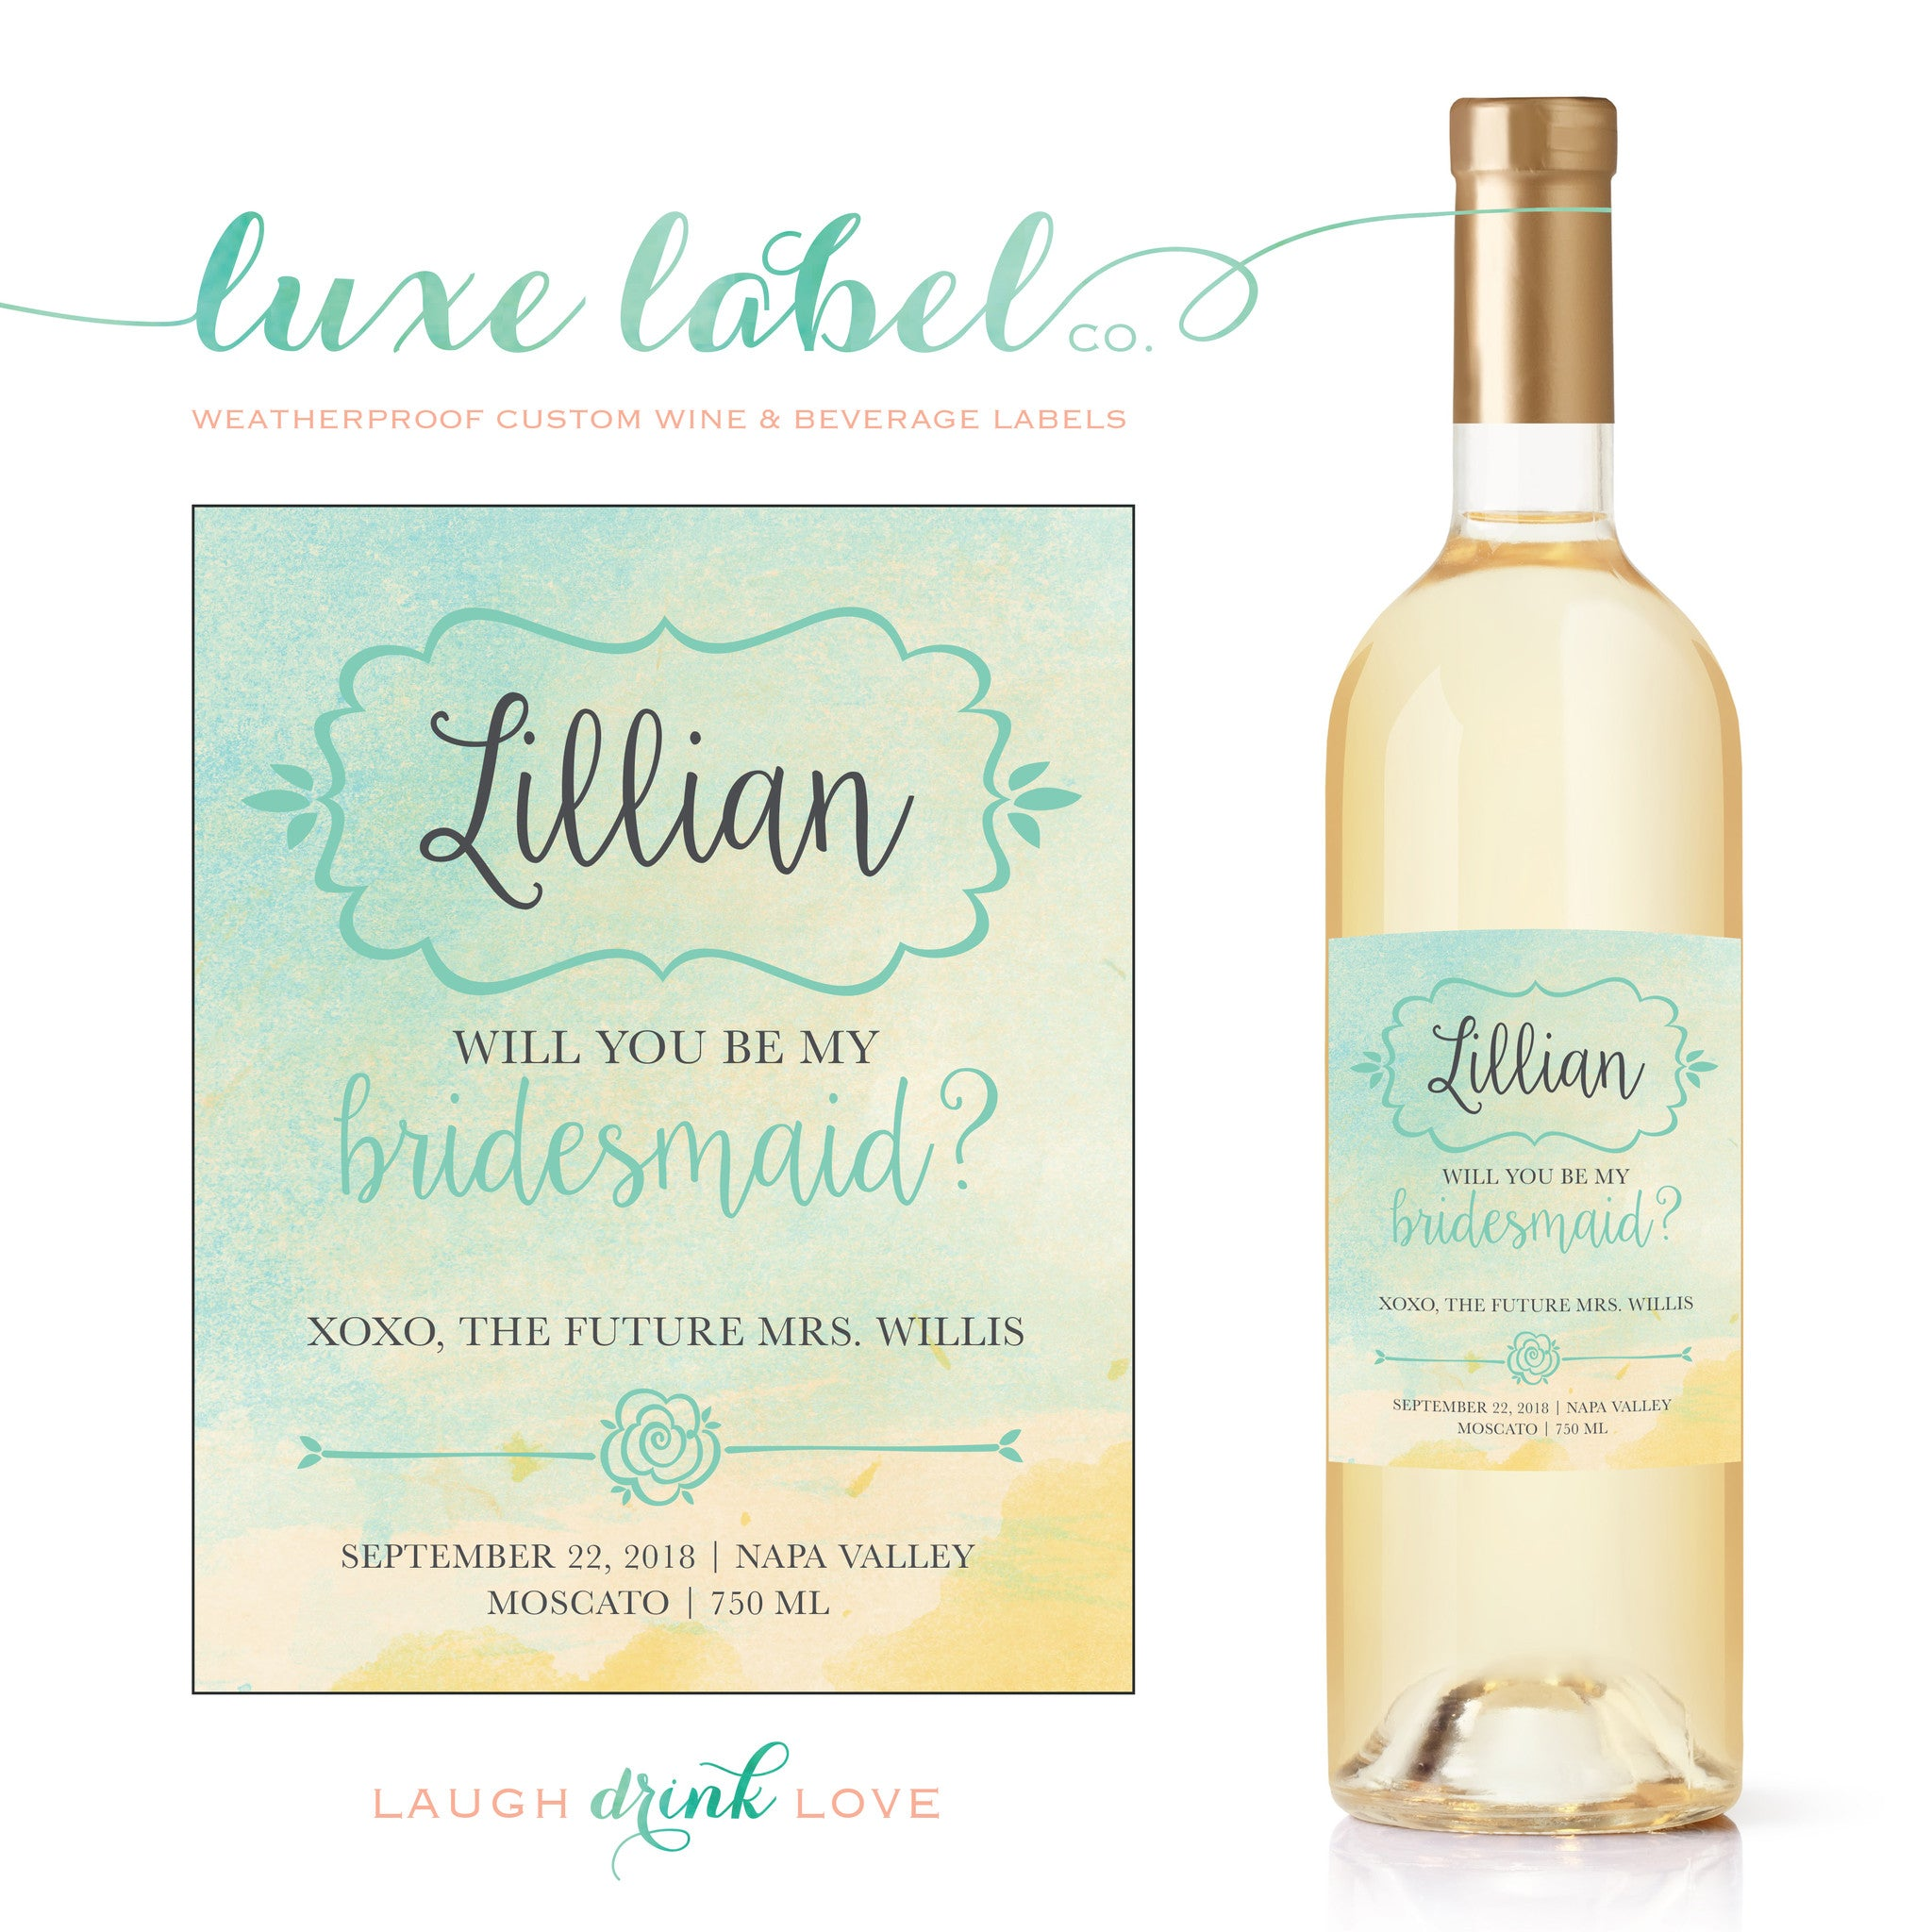 Wedding Wine Labels.Will You Be My Bridesmaid Wine Label Watercolor Wine Label Wedding Wine Label Wedding Wine Bottle Label Wine Labels For Bridesmaids